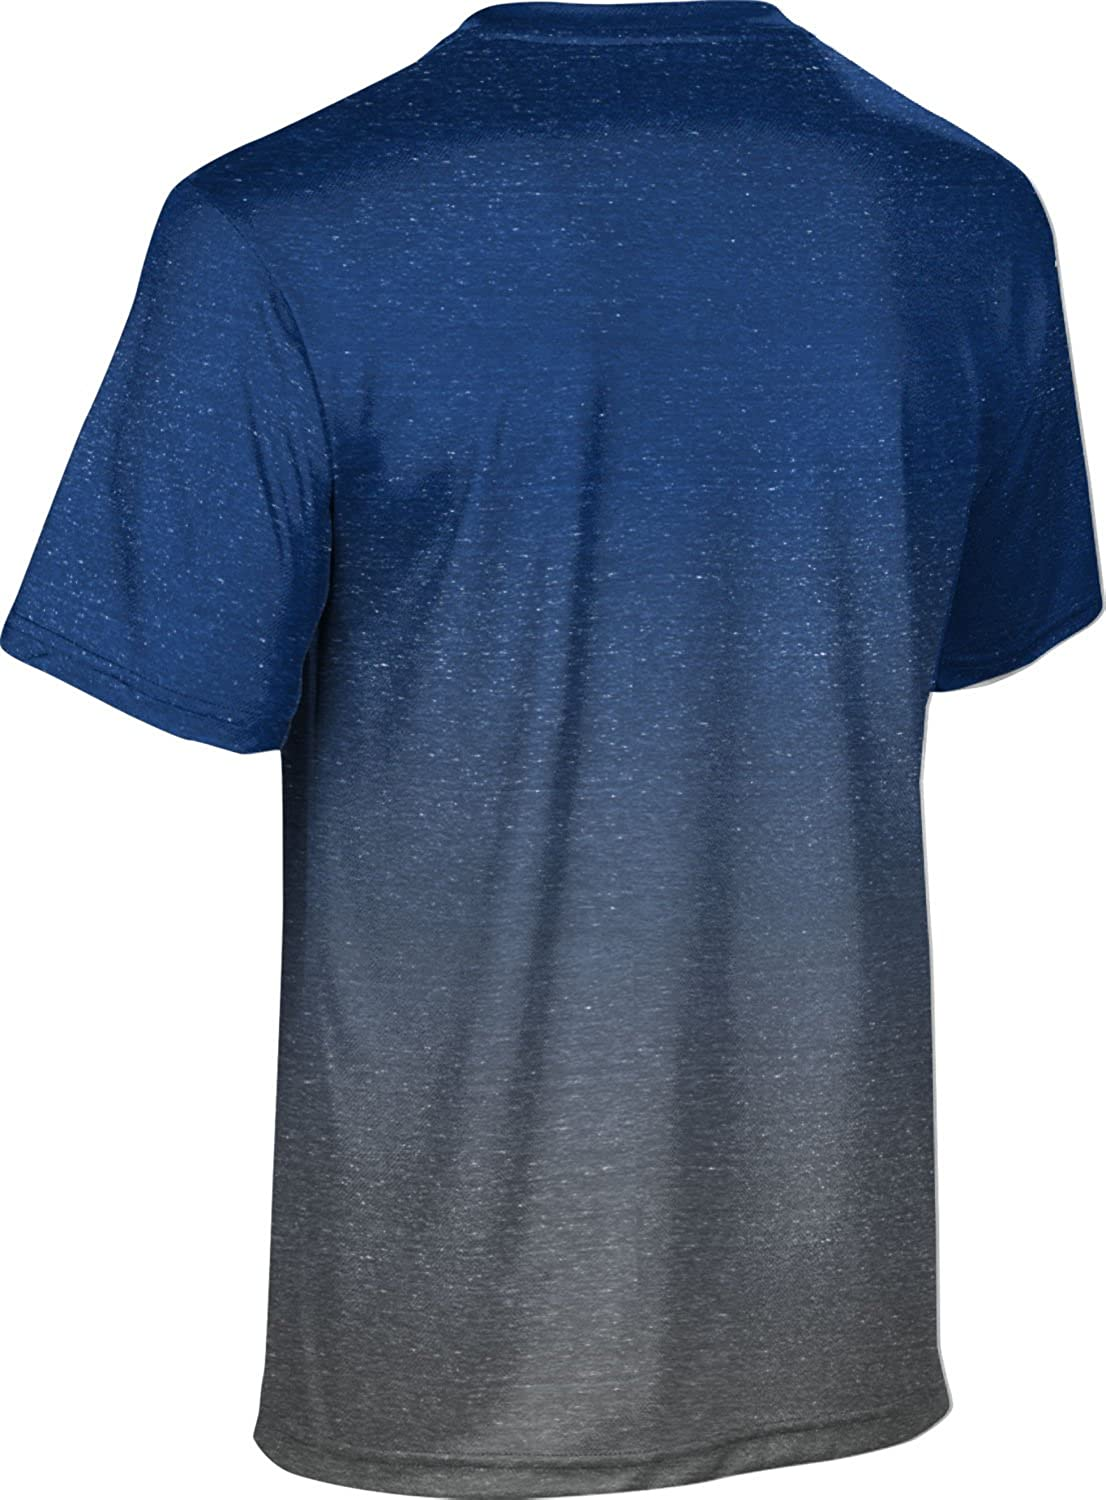 Ombre Air Force Academy Boys Performance T-Shirt ProSphere U.S